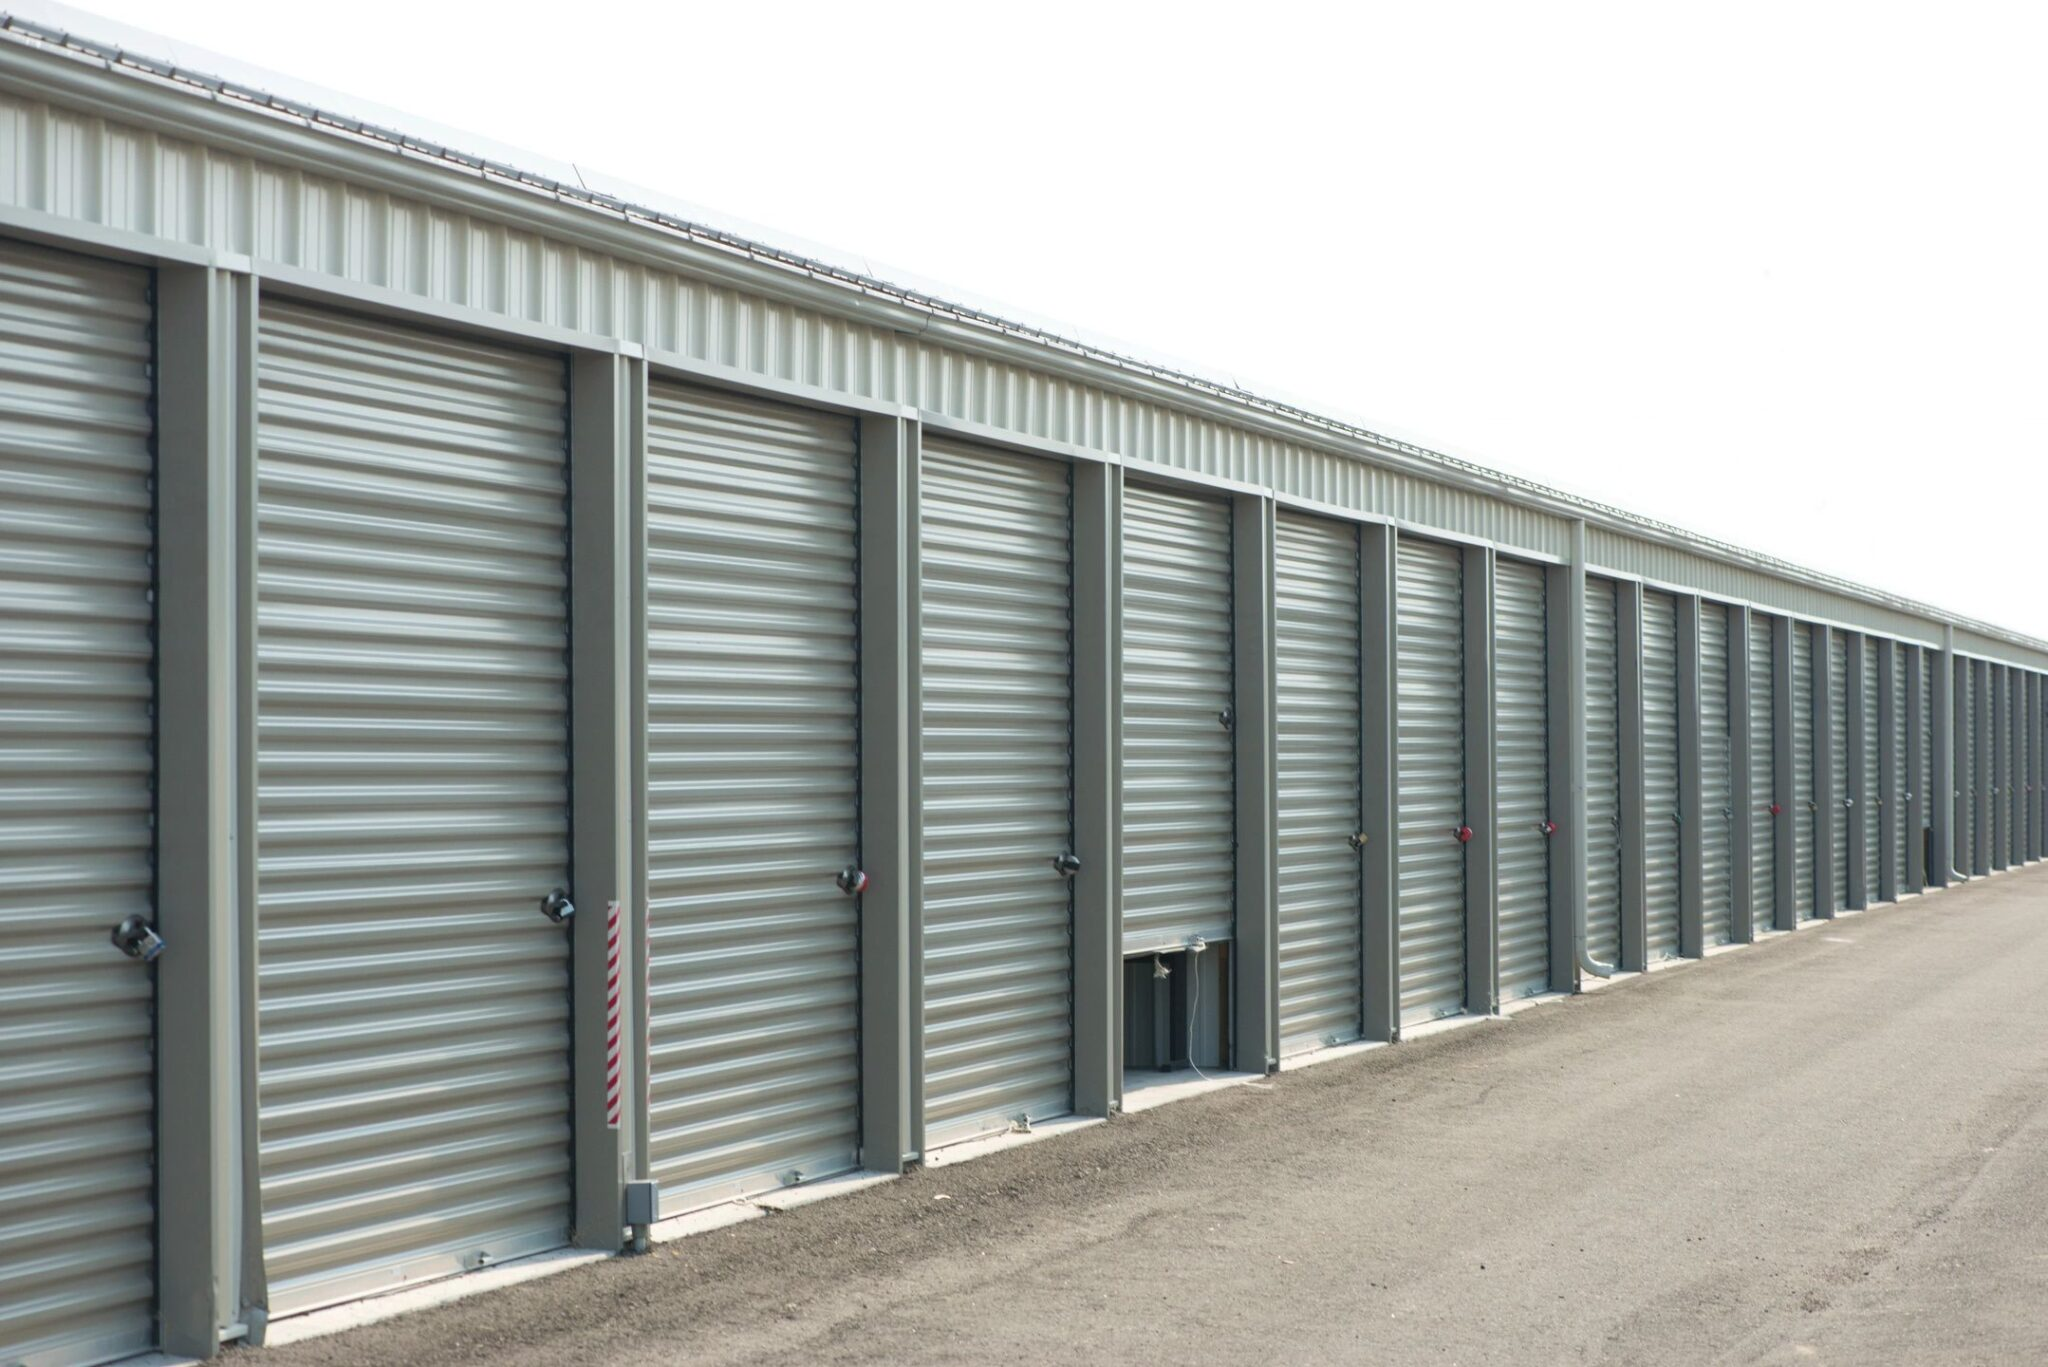 Storage Companies Eliminate Credit Card Processing Fees